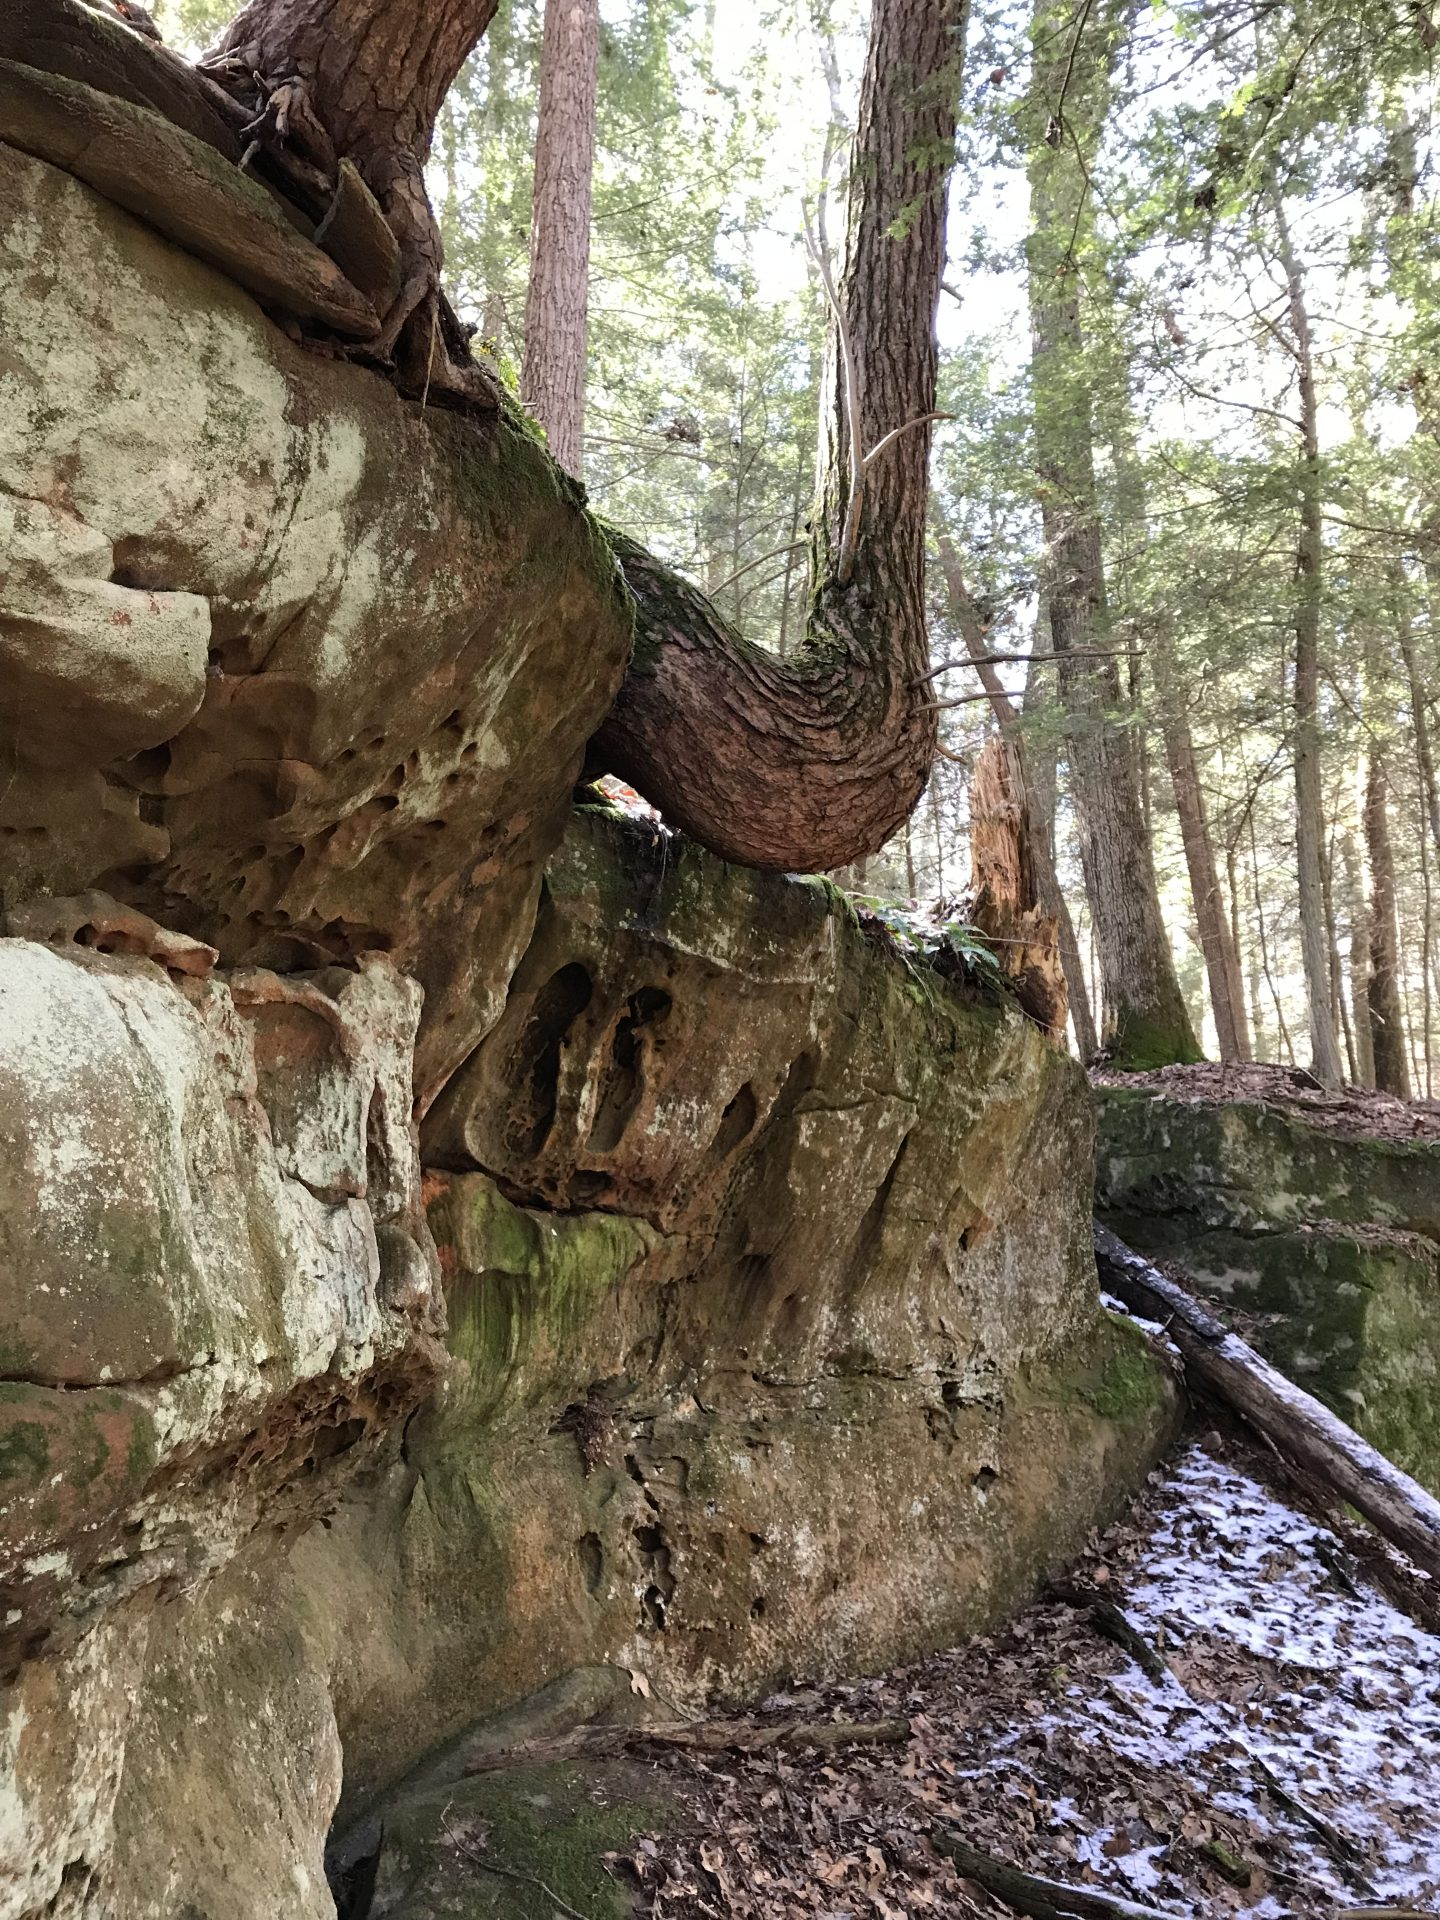 Impressive Rock Formations on the Fern Gully tract. Photo by Brian Blair.